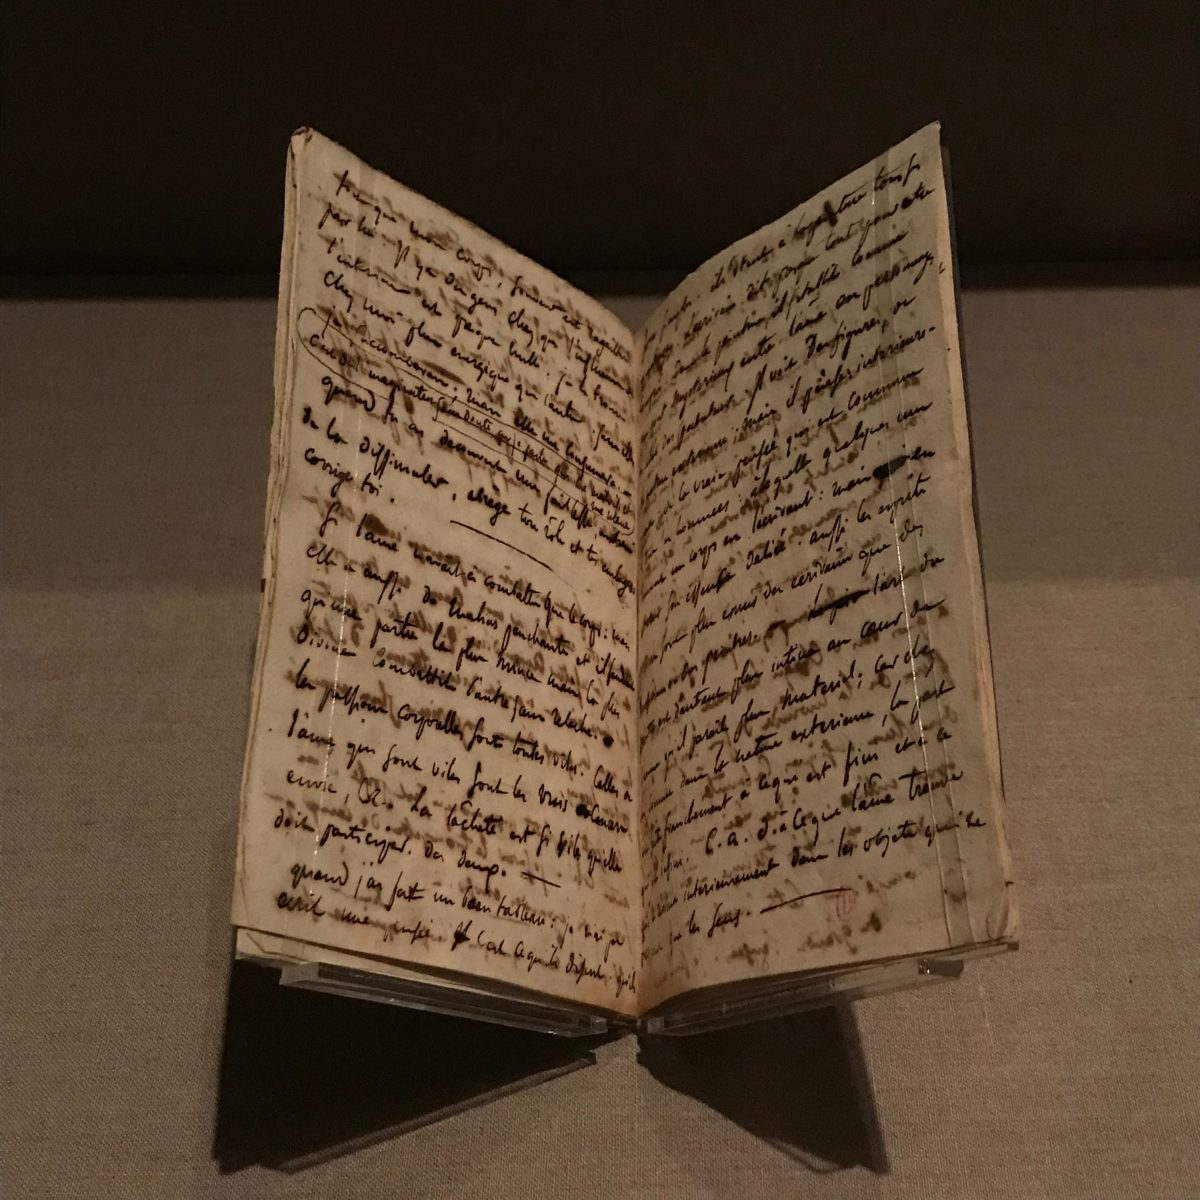 Journal, 1822–24: First Notebook (September 3–October 27, 1822). Folios 15v and 16r (October 8, 1822). Pen and brown ink on paper. Paris, Bibliothèque de l'Institut national d'histoire de l'art, collections Jacques-Doucet (Ms 247–1) (Milene Fernandez/The Epoch Times)